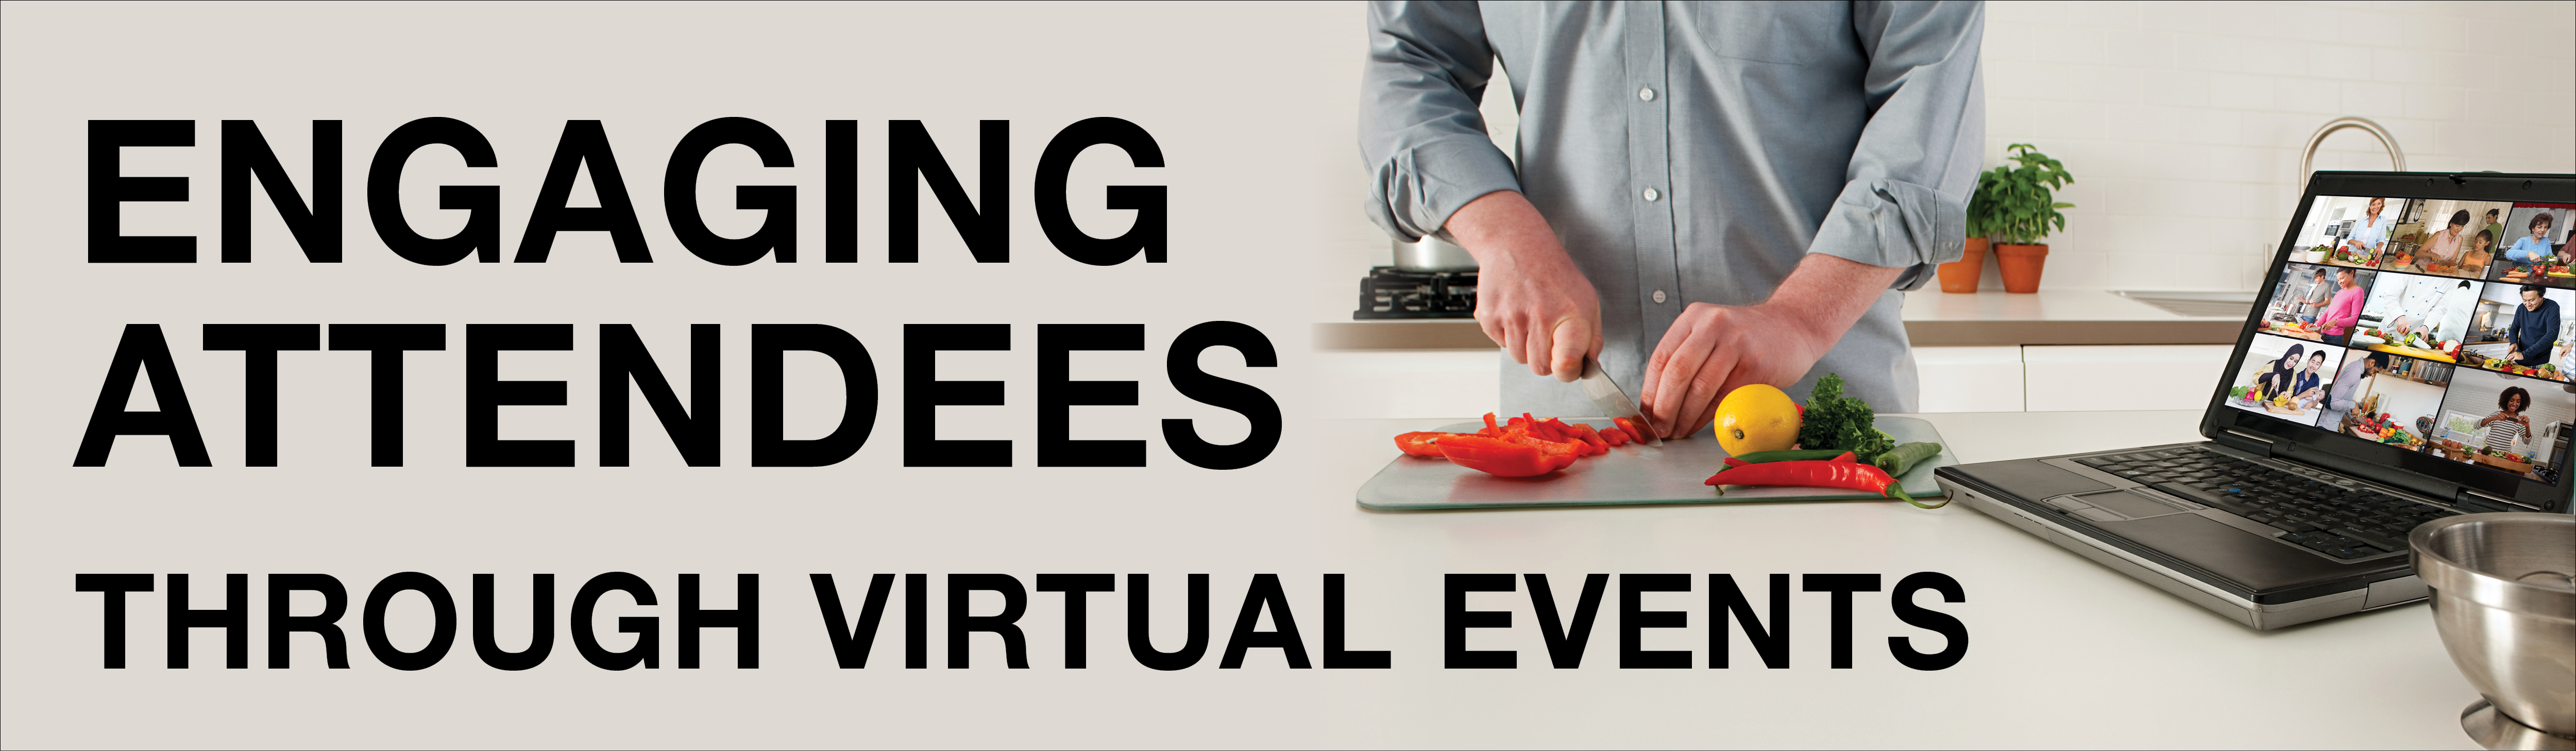 Engaging Attendees Through Virtual Events